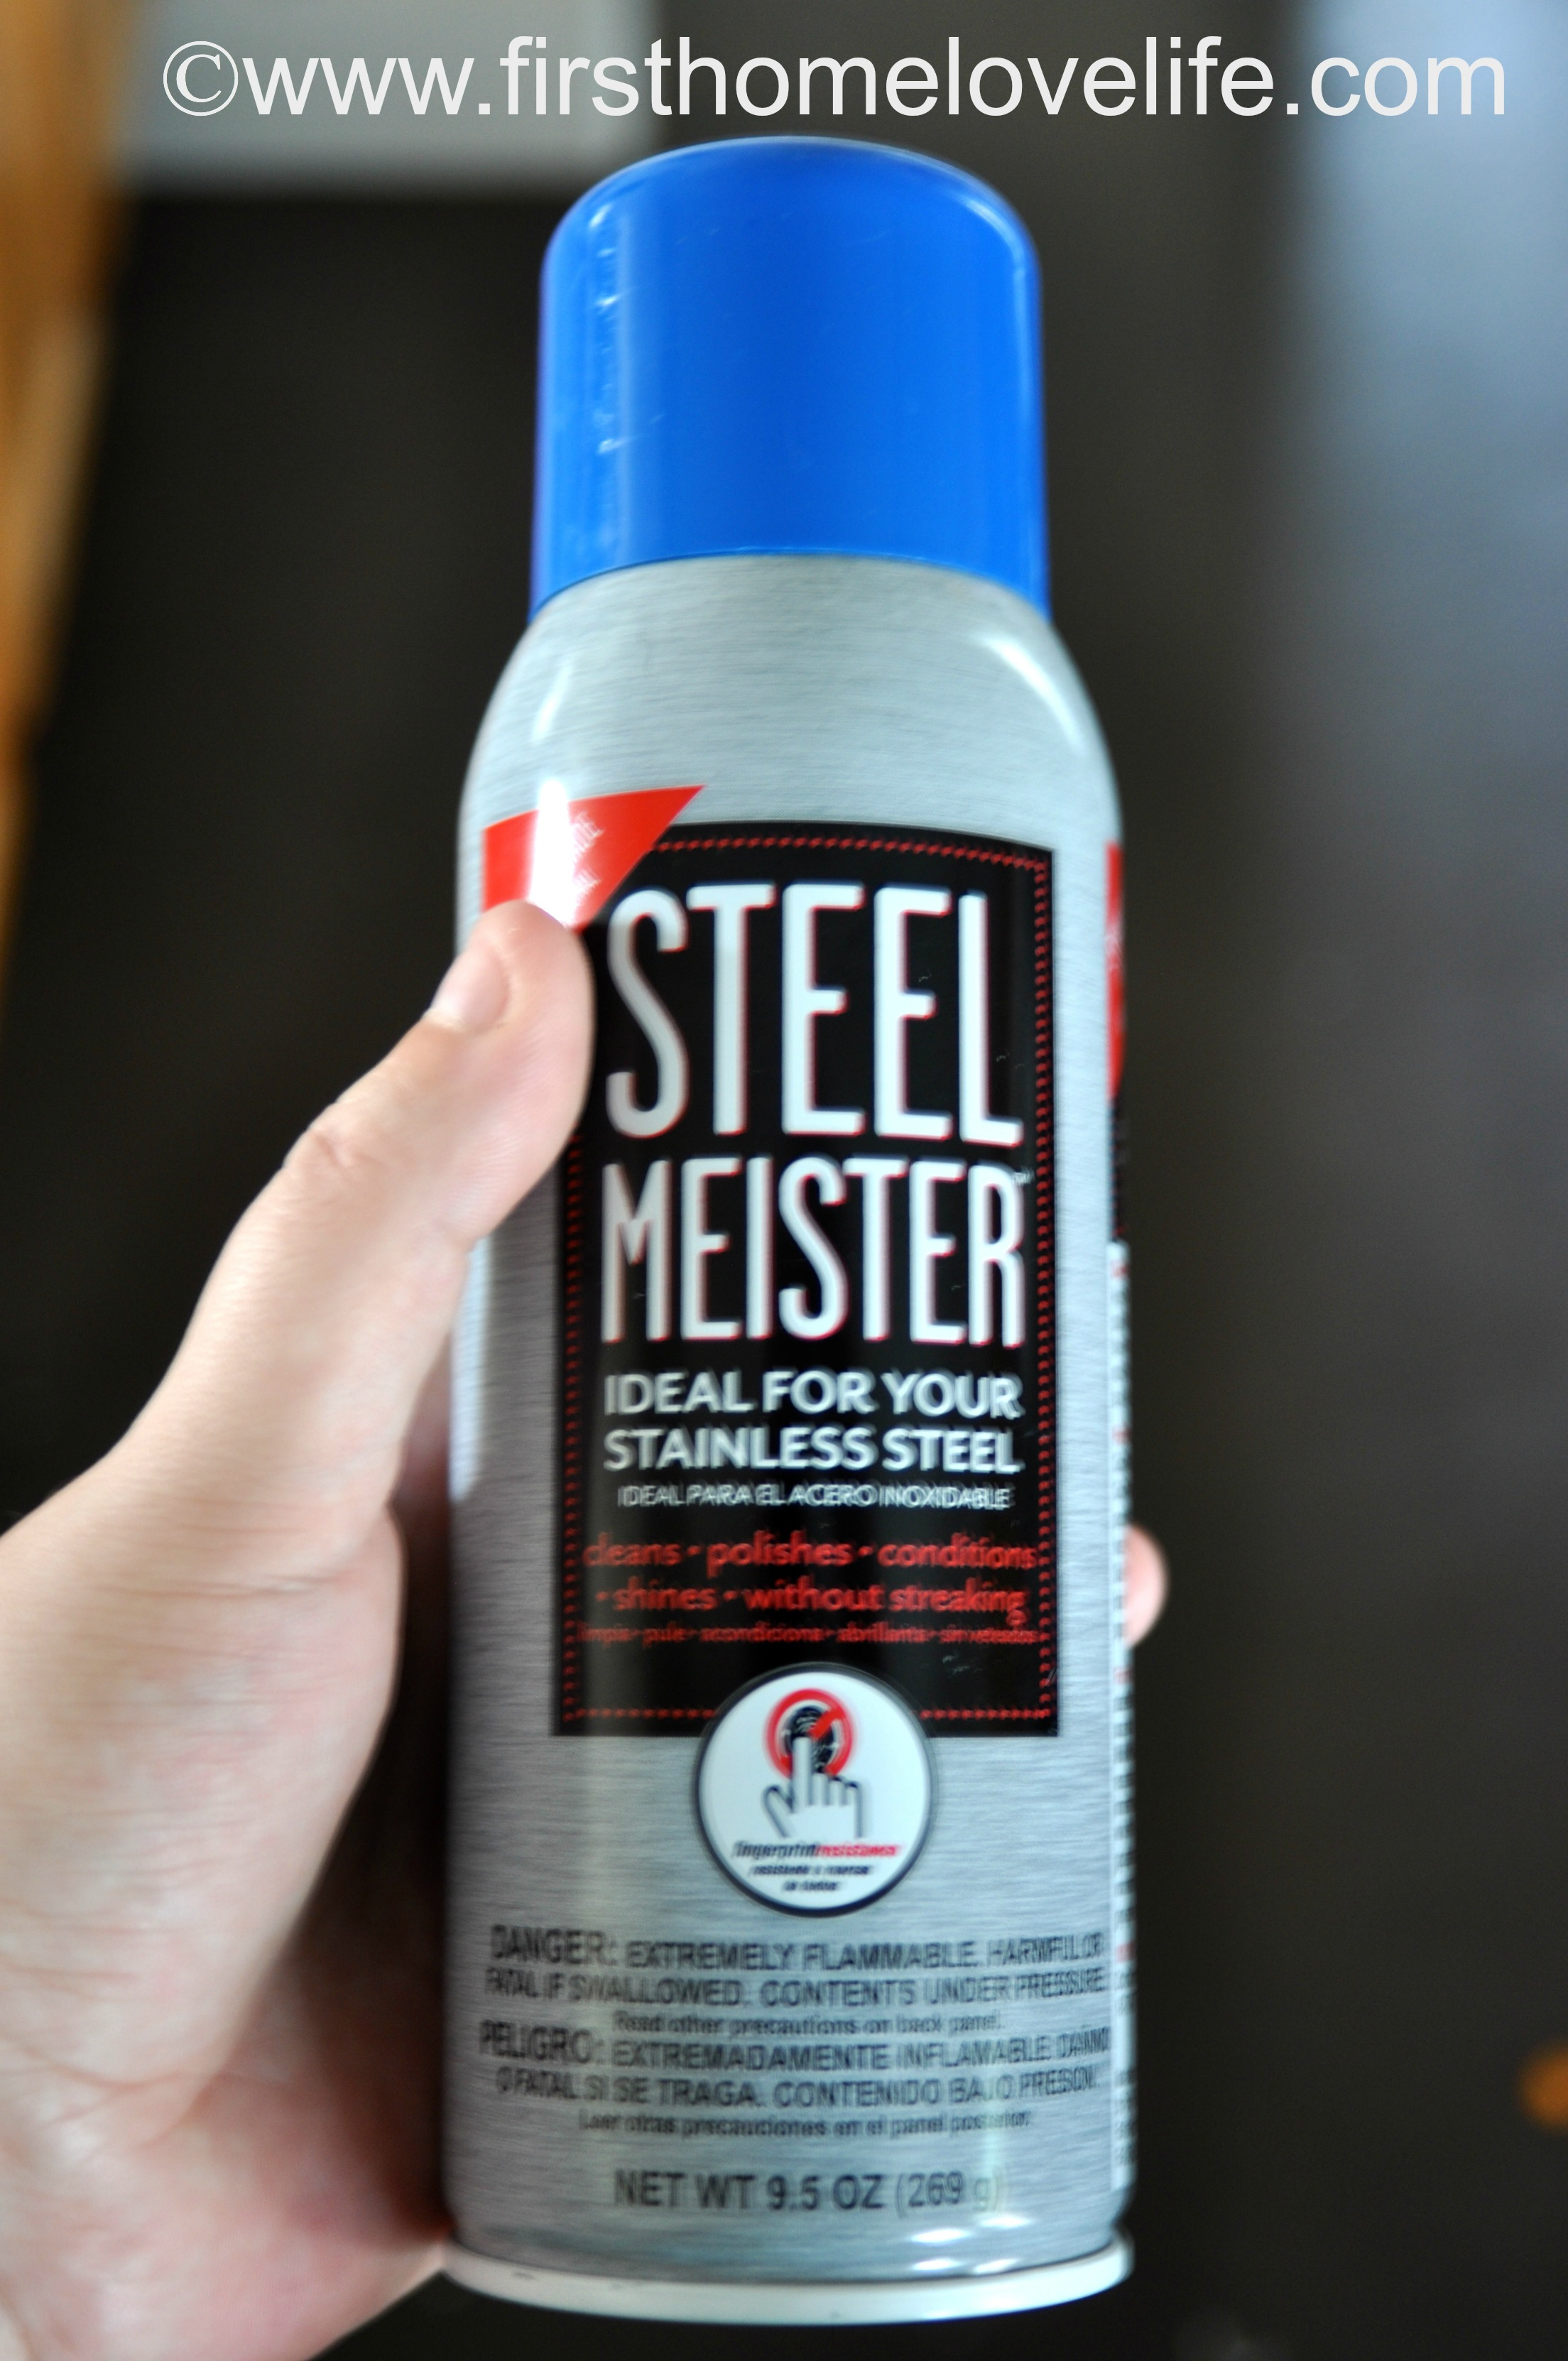 How To Clean Stainless Steel Steel Meister First Home